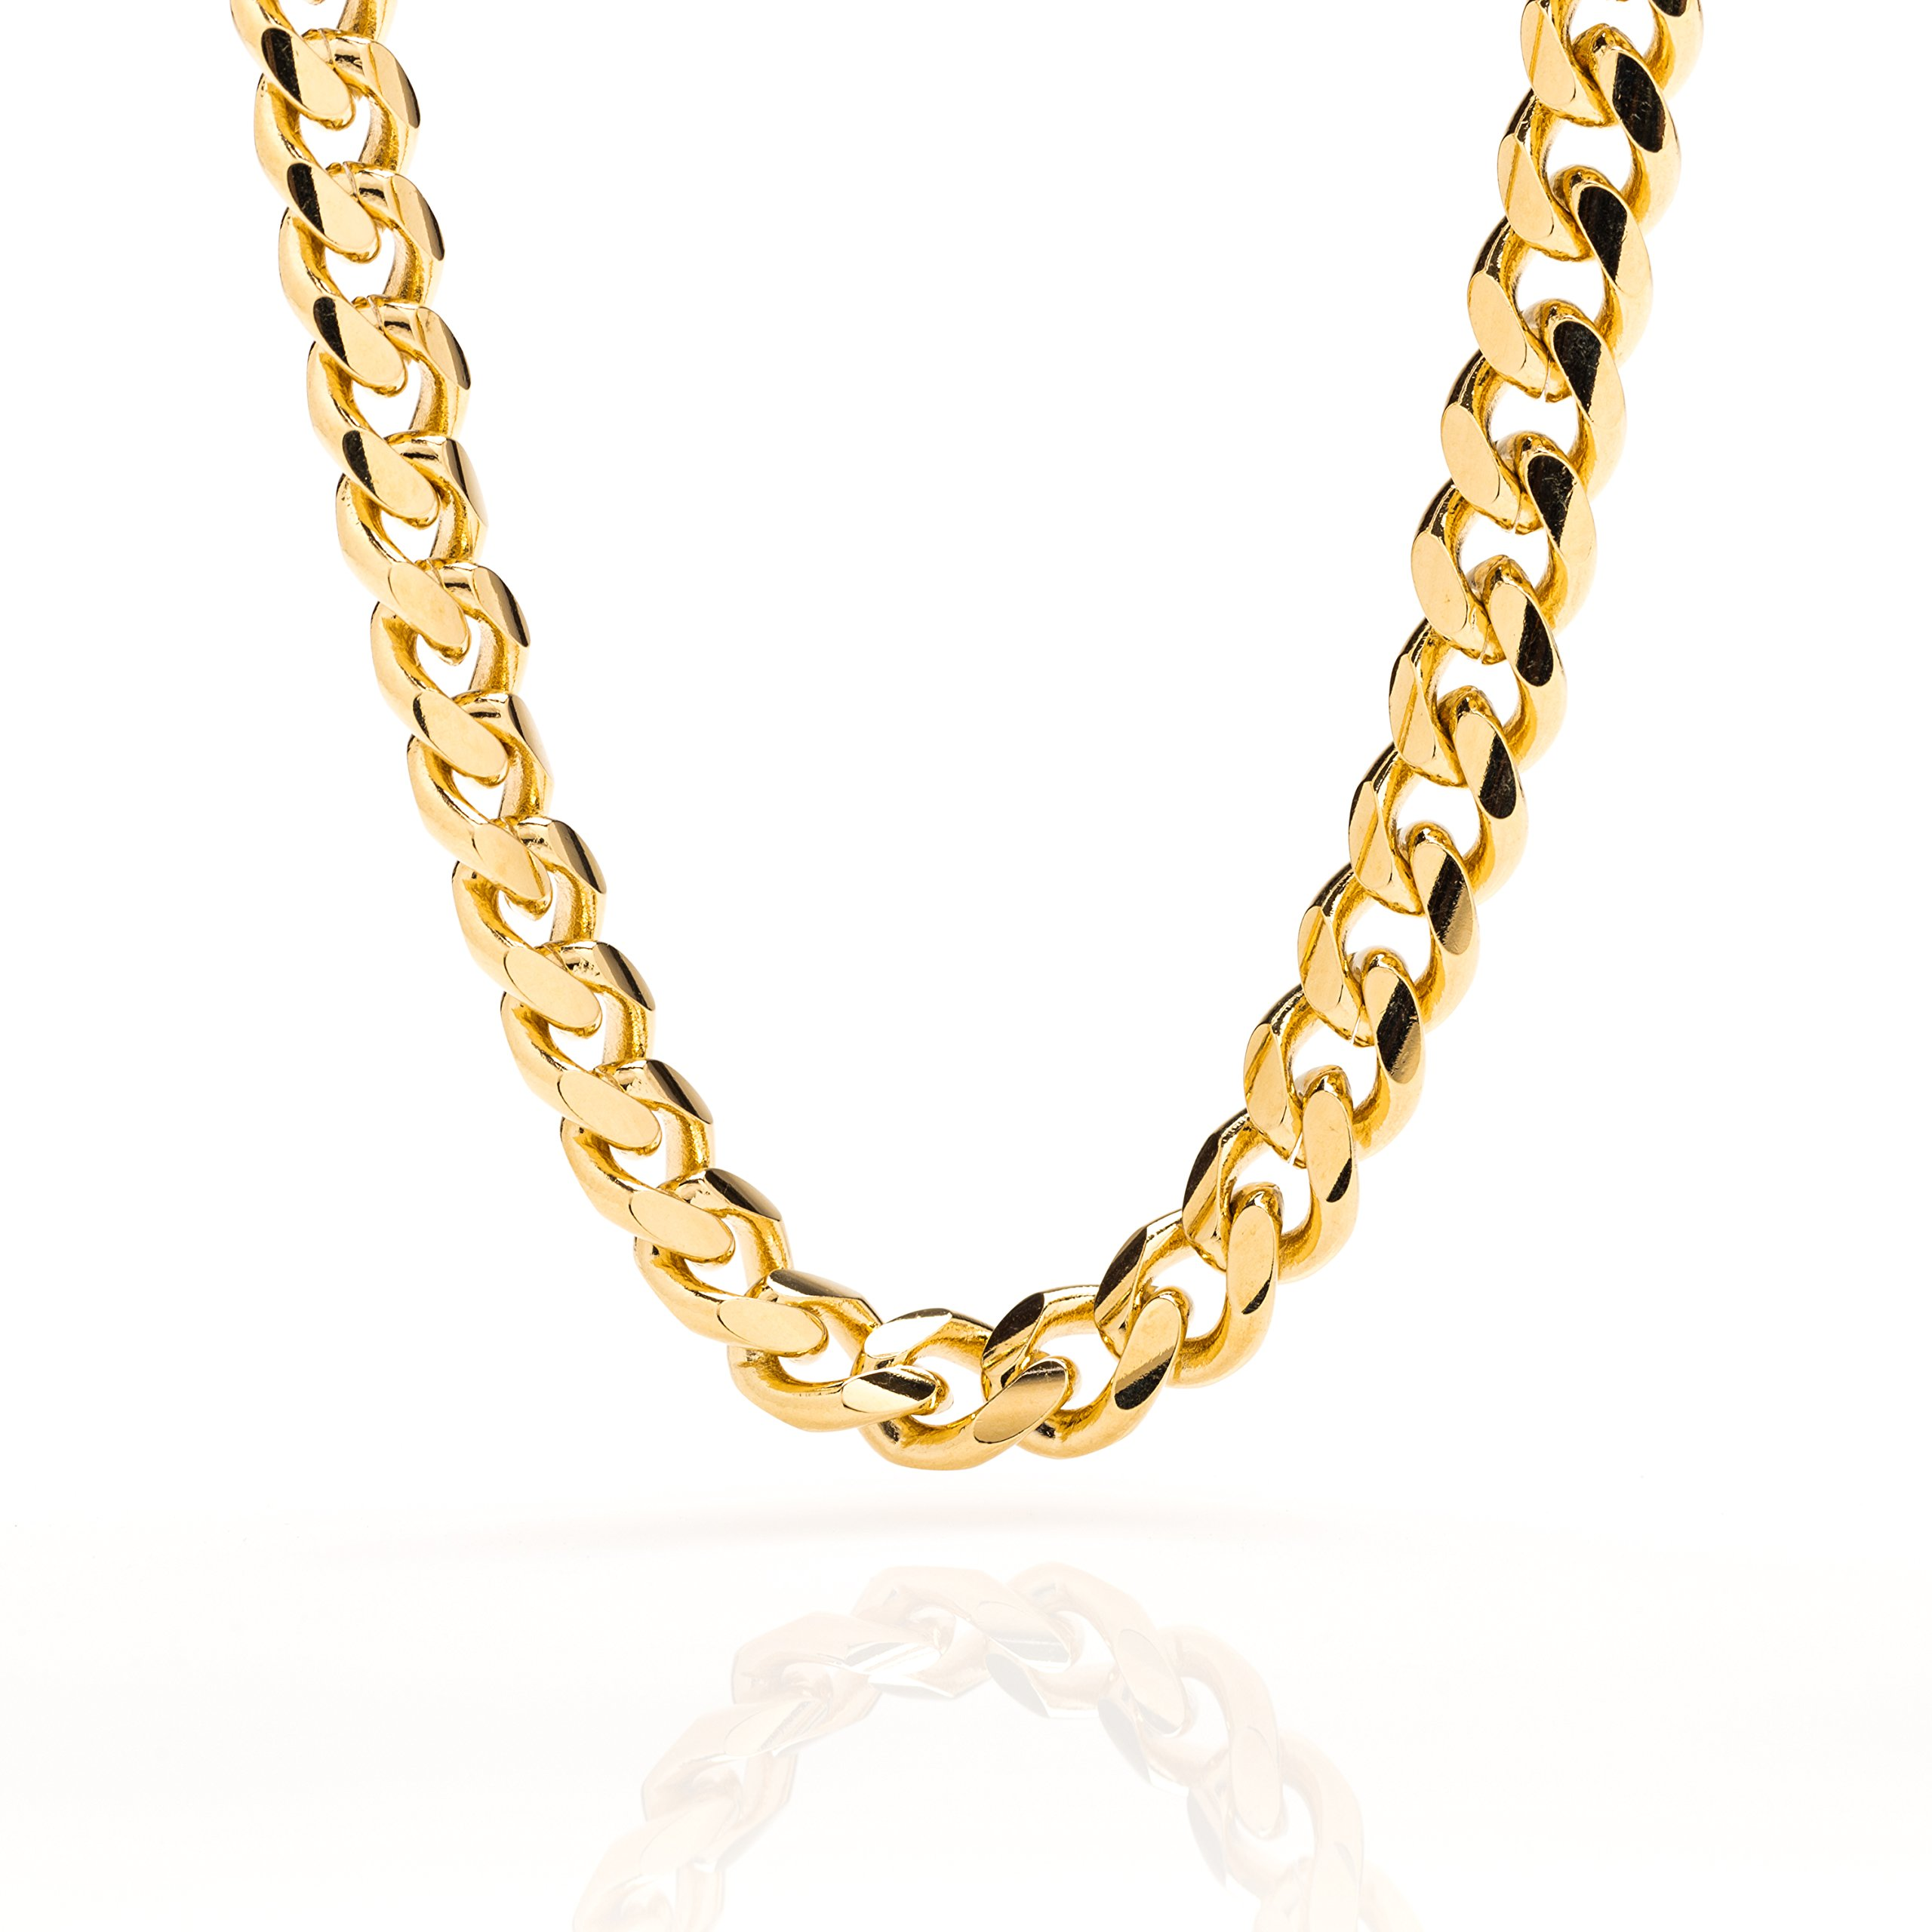 Lifetime Jewelry Cuban Link Chain 9MM, Round, 24K Gold with Inlaid Bronze, Fashion Jewelry Necklaces, Guaranteed for Life, 36 Inches by Lifetime Jewelry